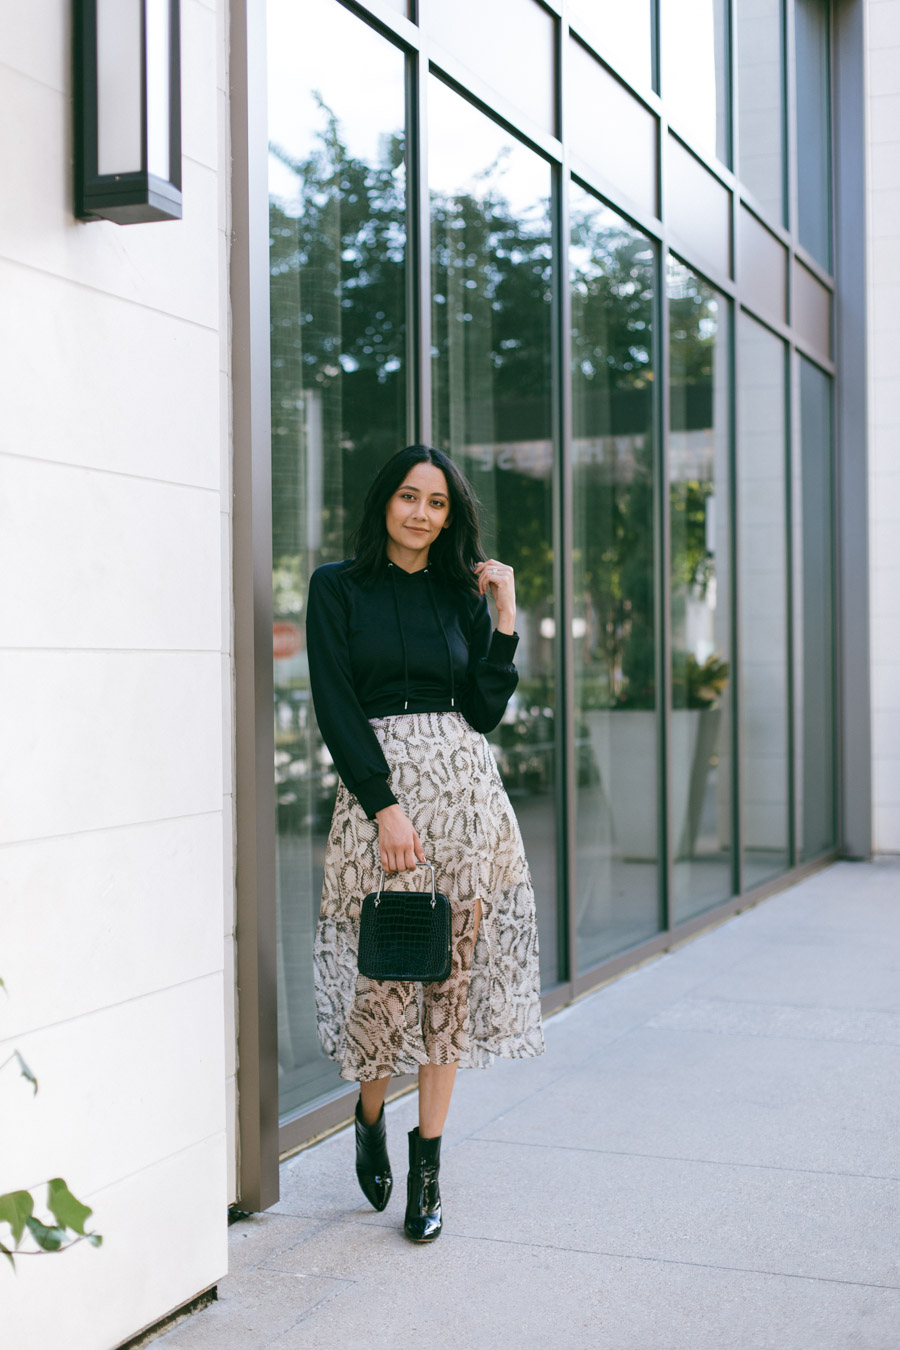 Houston fashion blogger Lilly wears a snake print skirt with black booties and a hoodie sweater